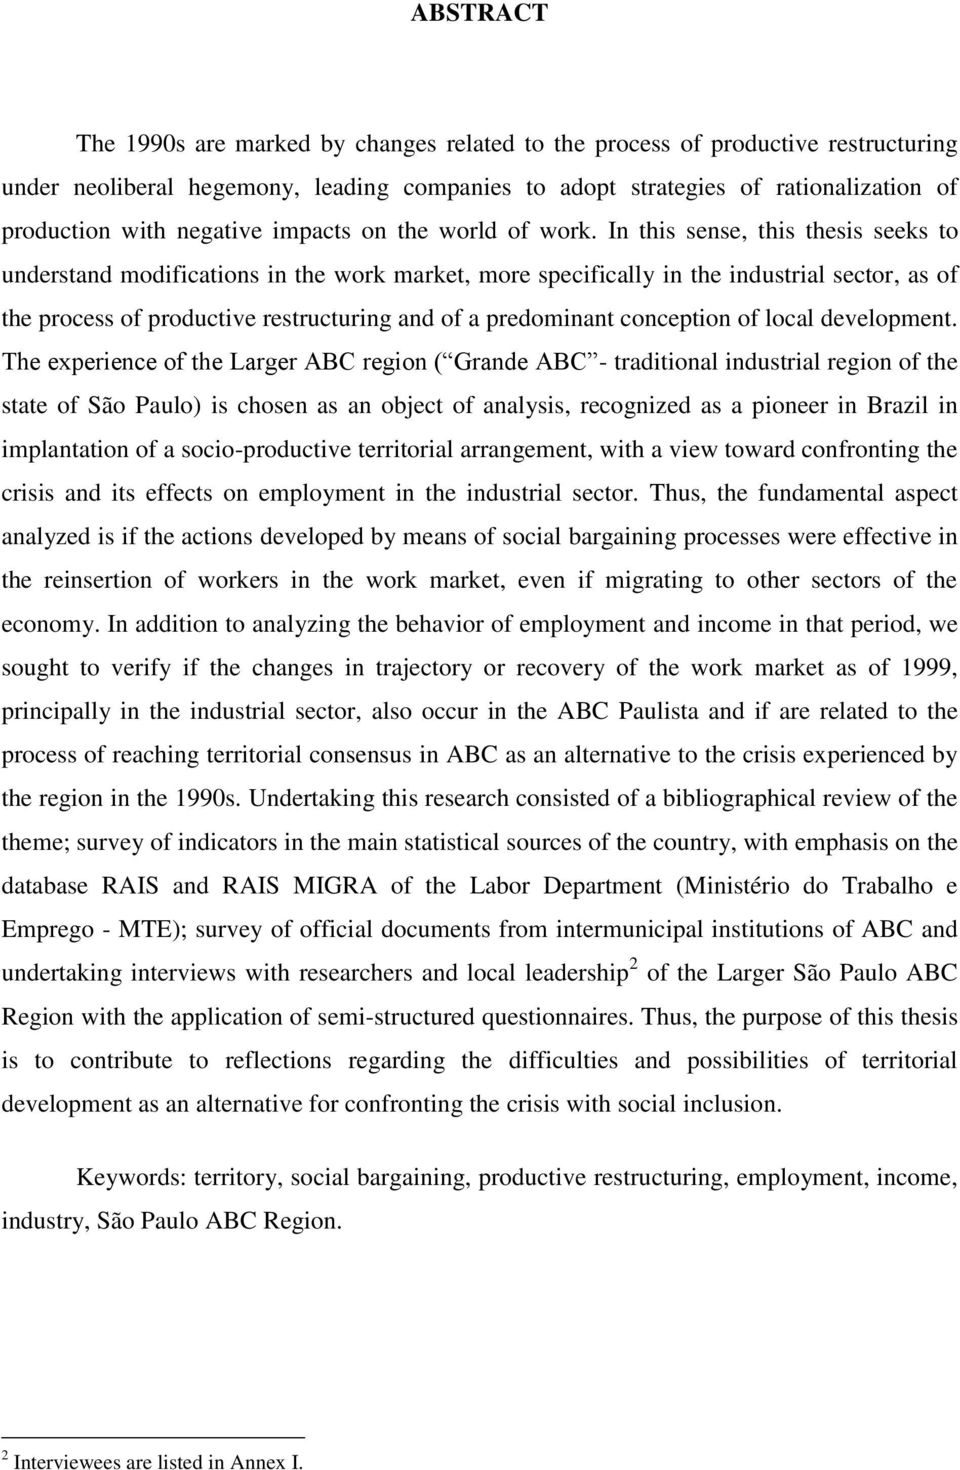 In this sense, this thesis seeks to understand modifications in the work market, more specifically in the industrial sector, as of the process of productive restructuring and of a predominant